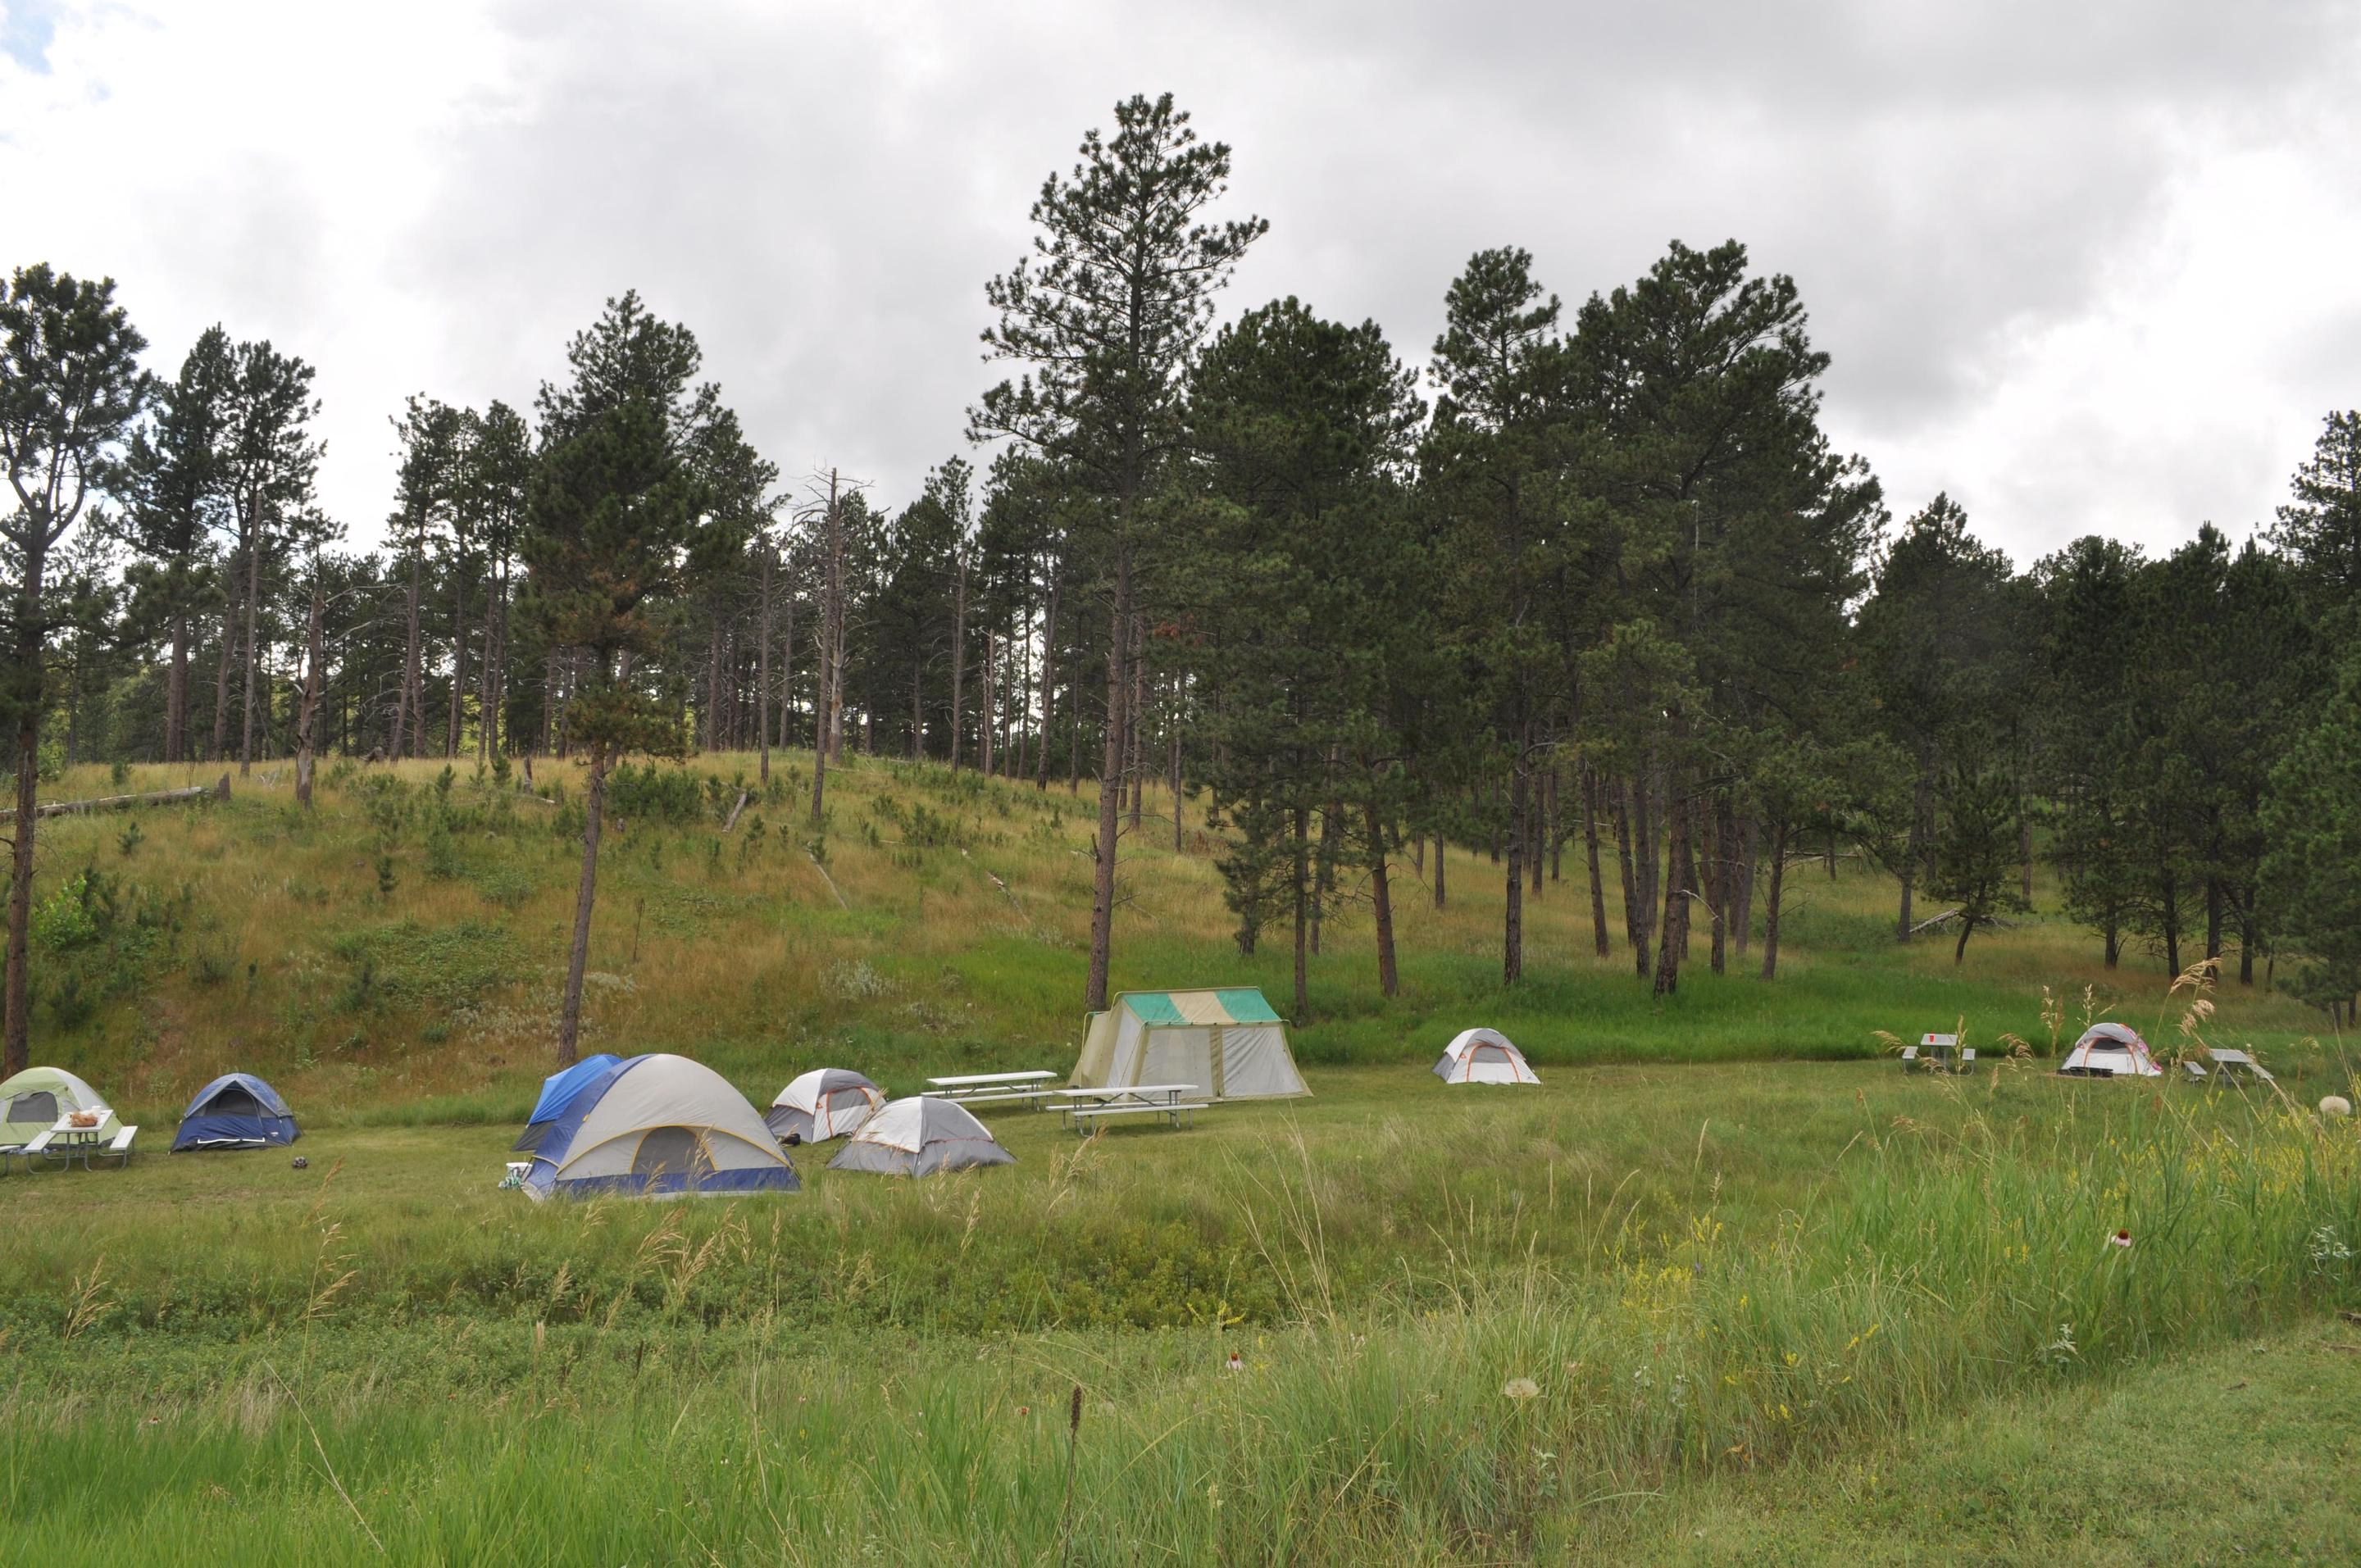 Elk Mountain Campground Group CampsiteThere are two group campsites available to reserve at Elk Mountain Campground.